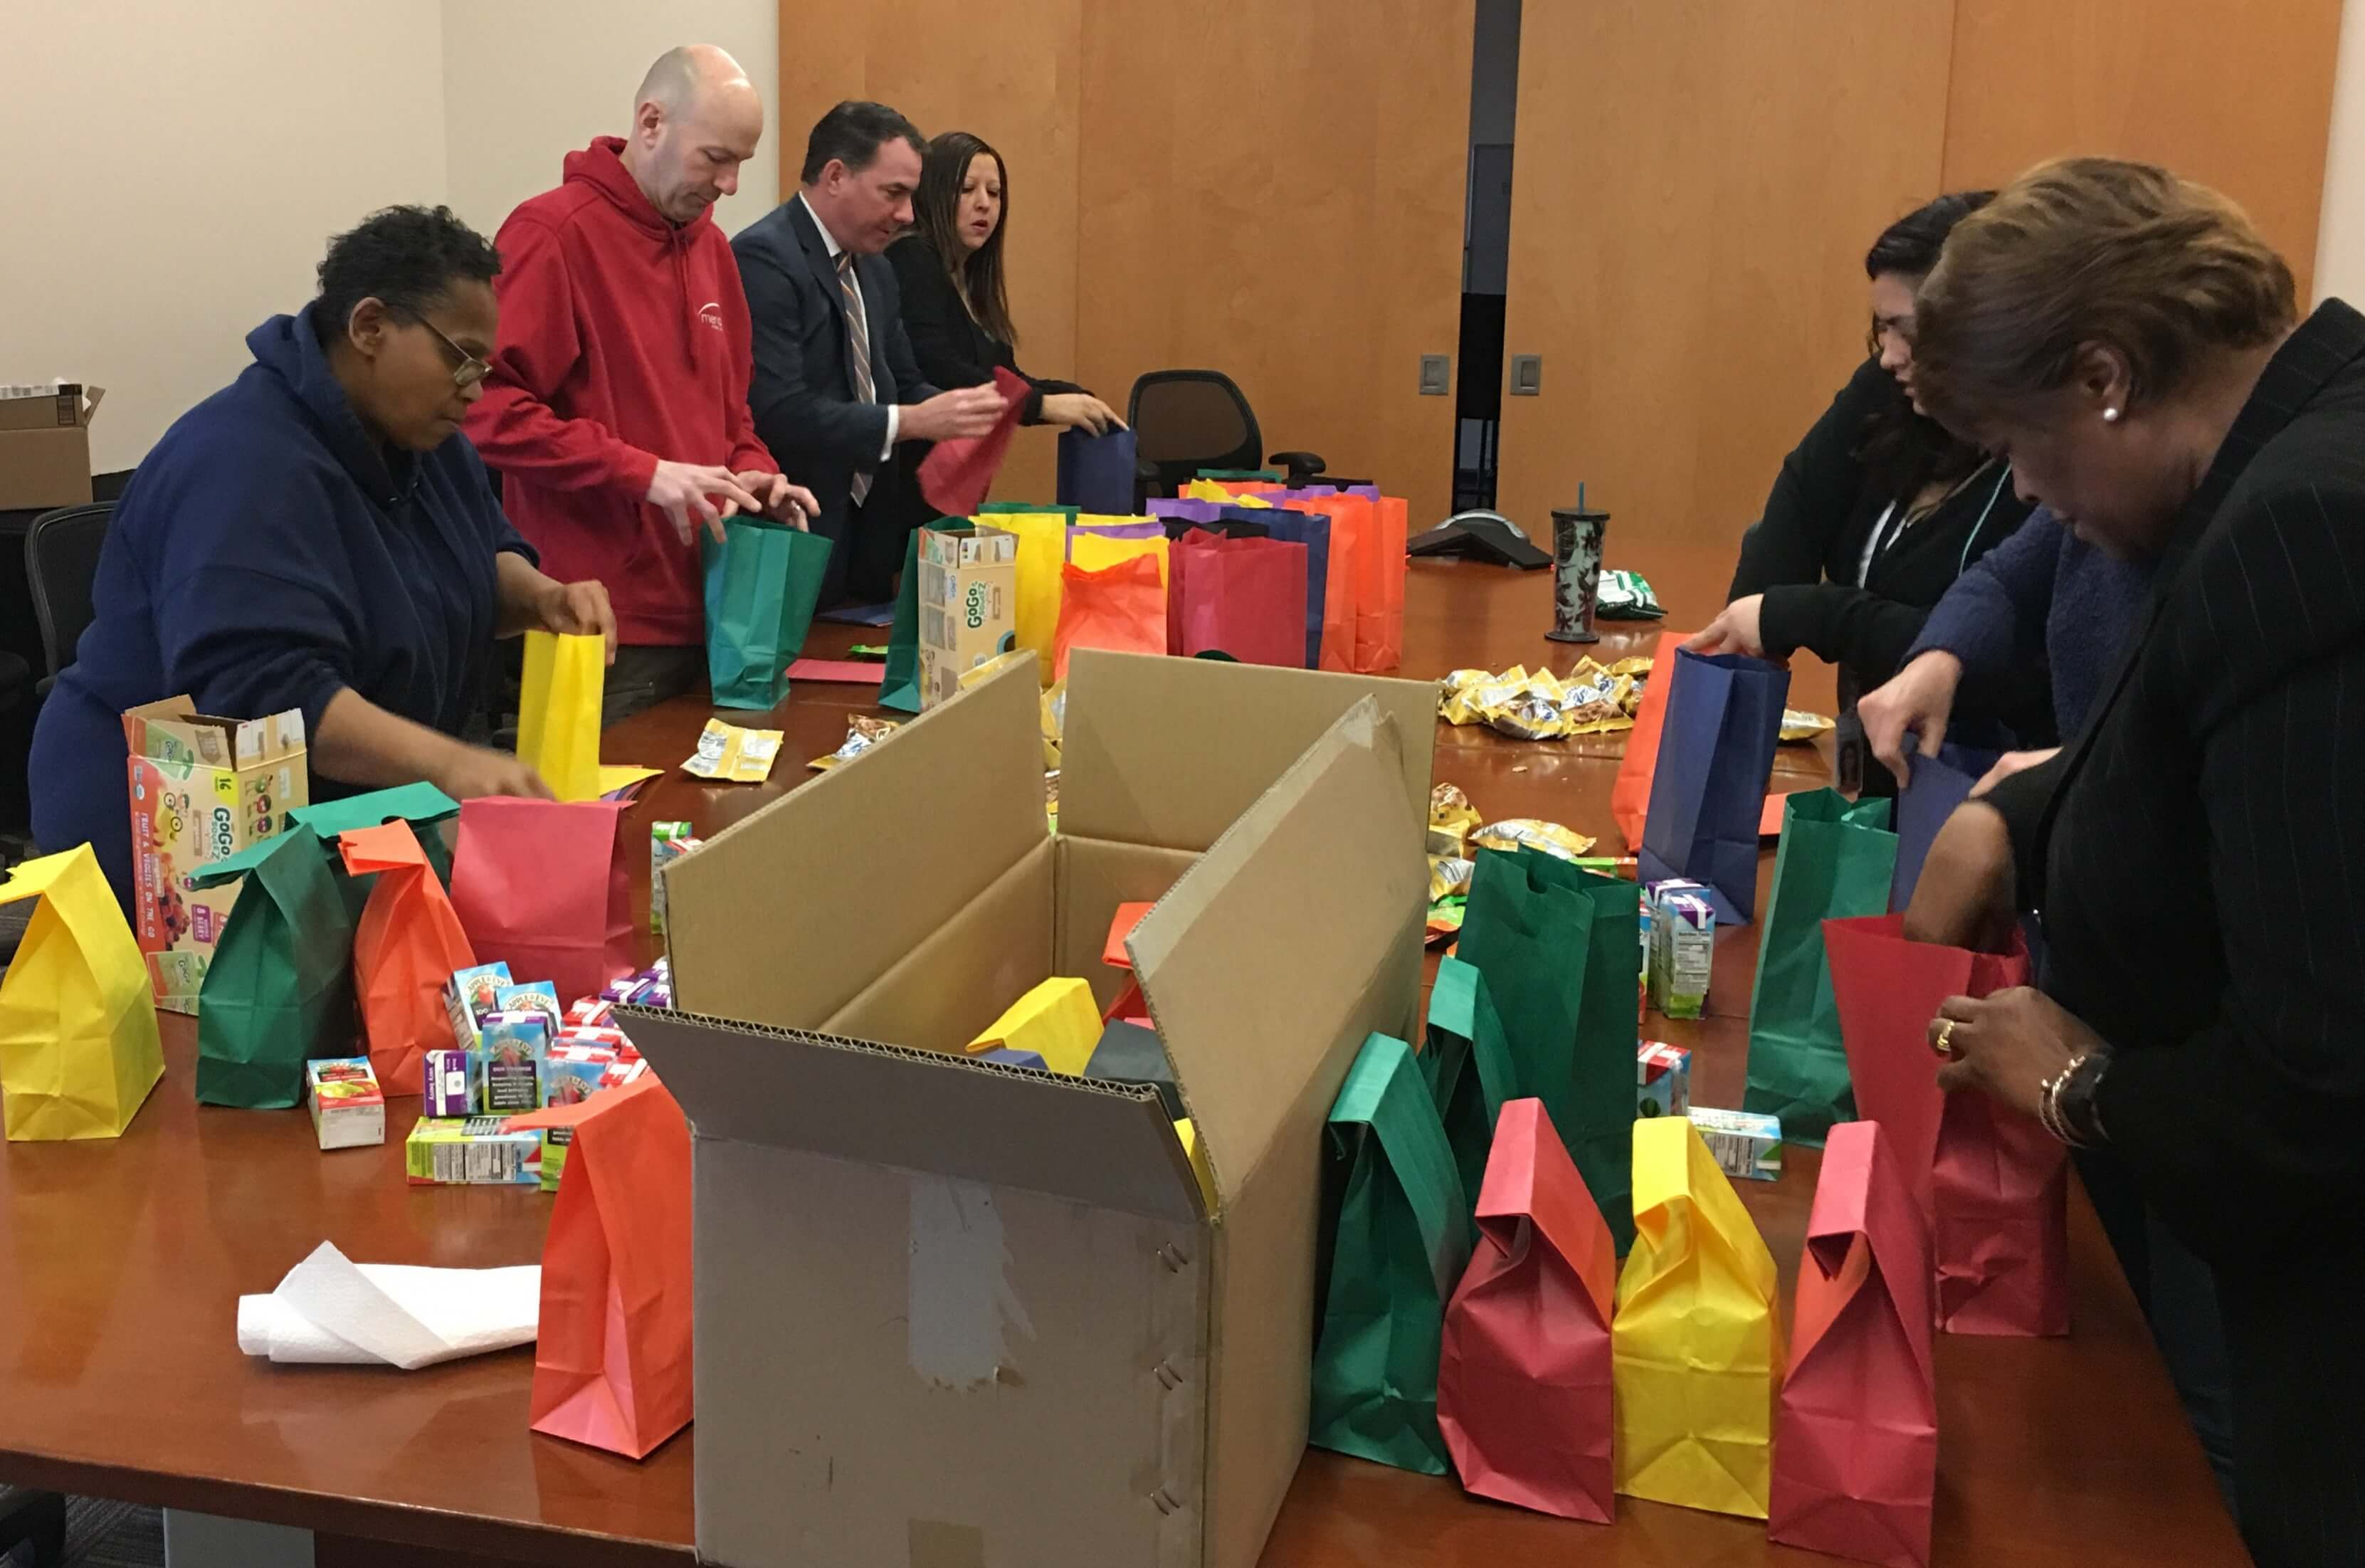 2018-Meridian-Community-Outreach-after-school-snack-packs-for-Cornerstones2-787191-edited.jpg